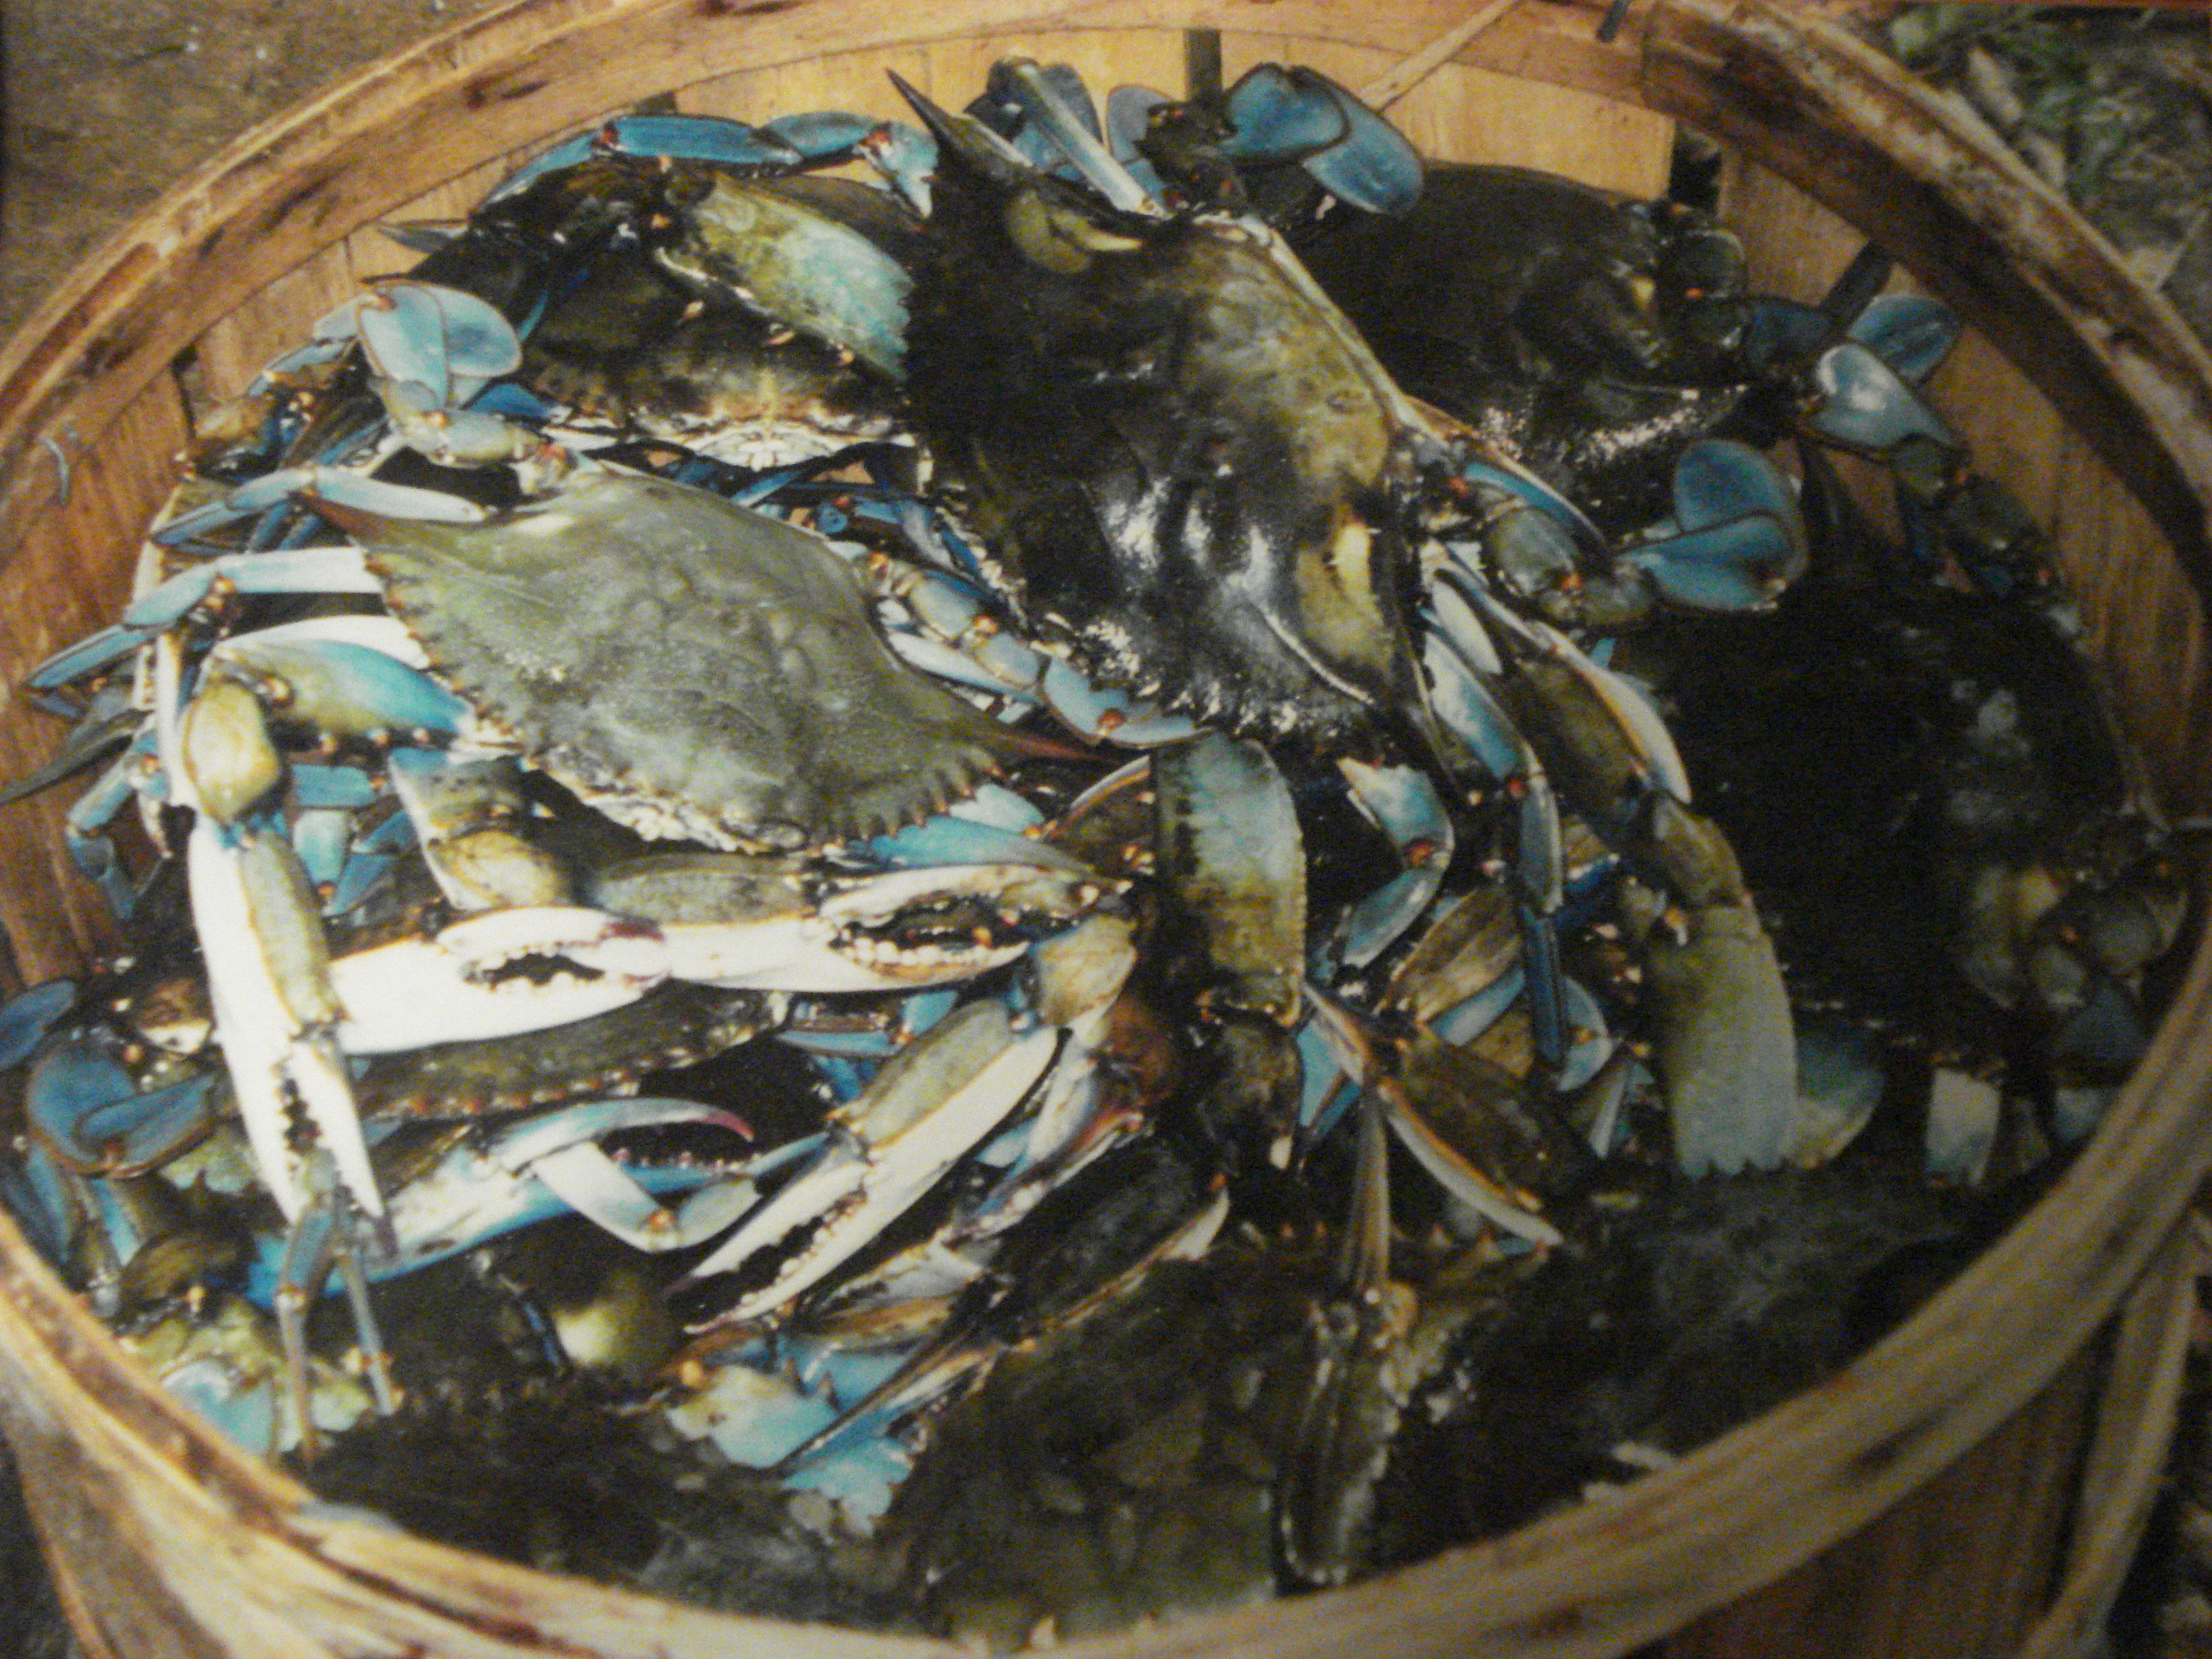 Blue crabs, Old Bay, good times, oh my!